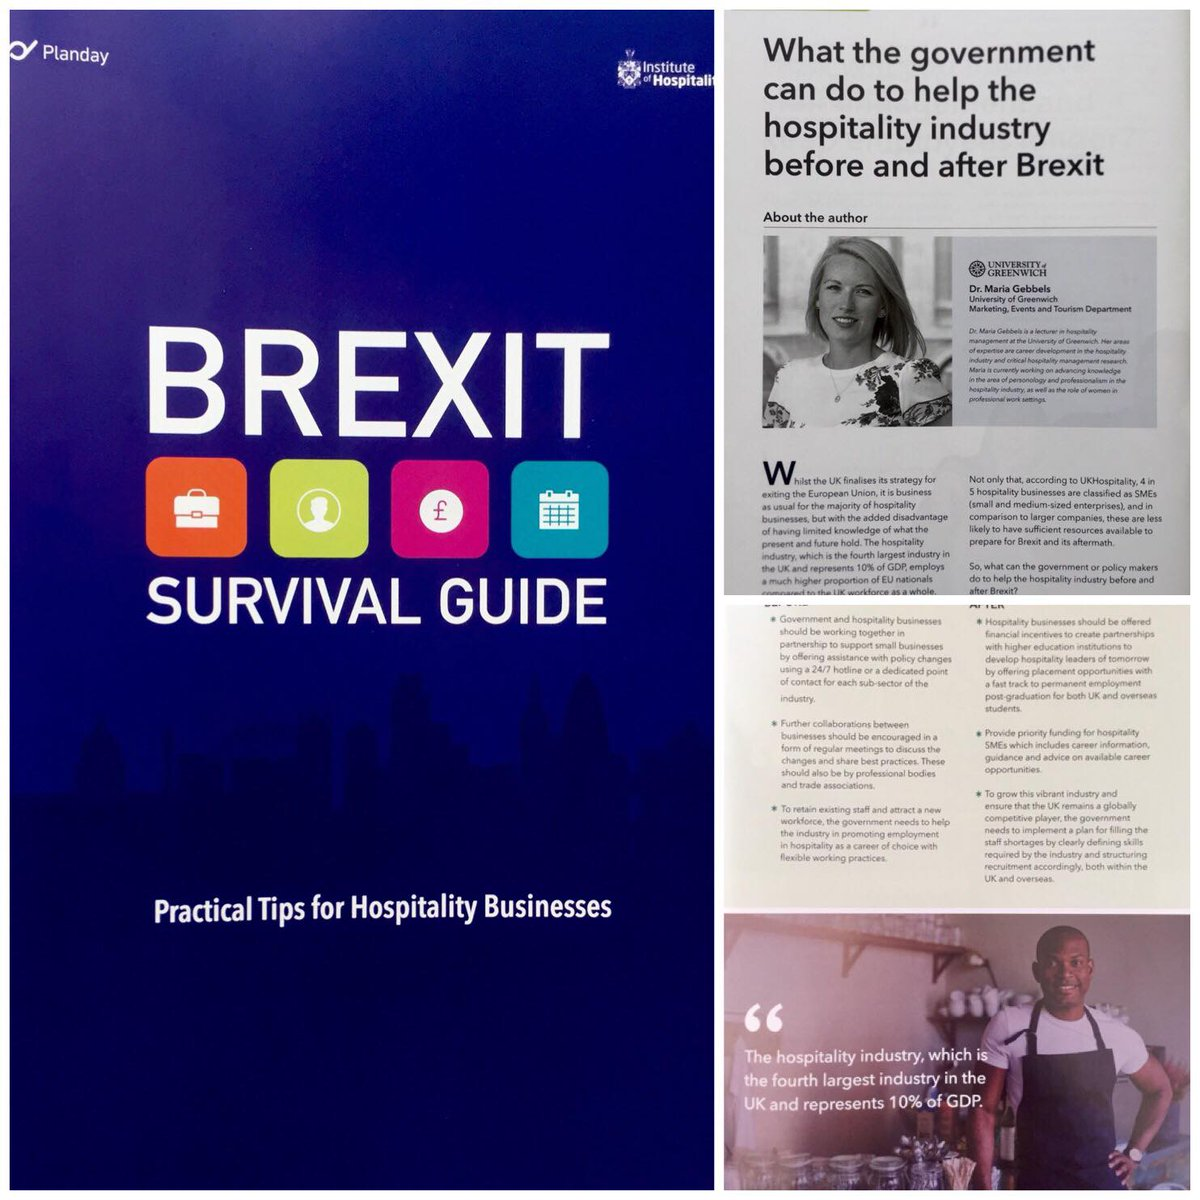 the brexit survival guide available here httpscdnmarketing plandaycomwebsiteuploads20180618124536brexit hospitality survival guidepdf